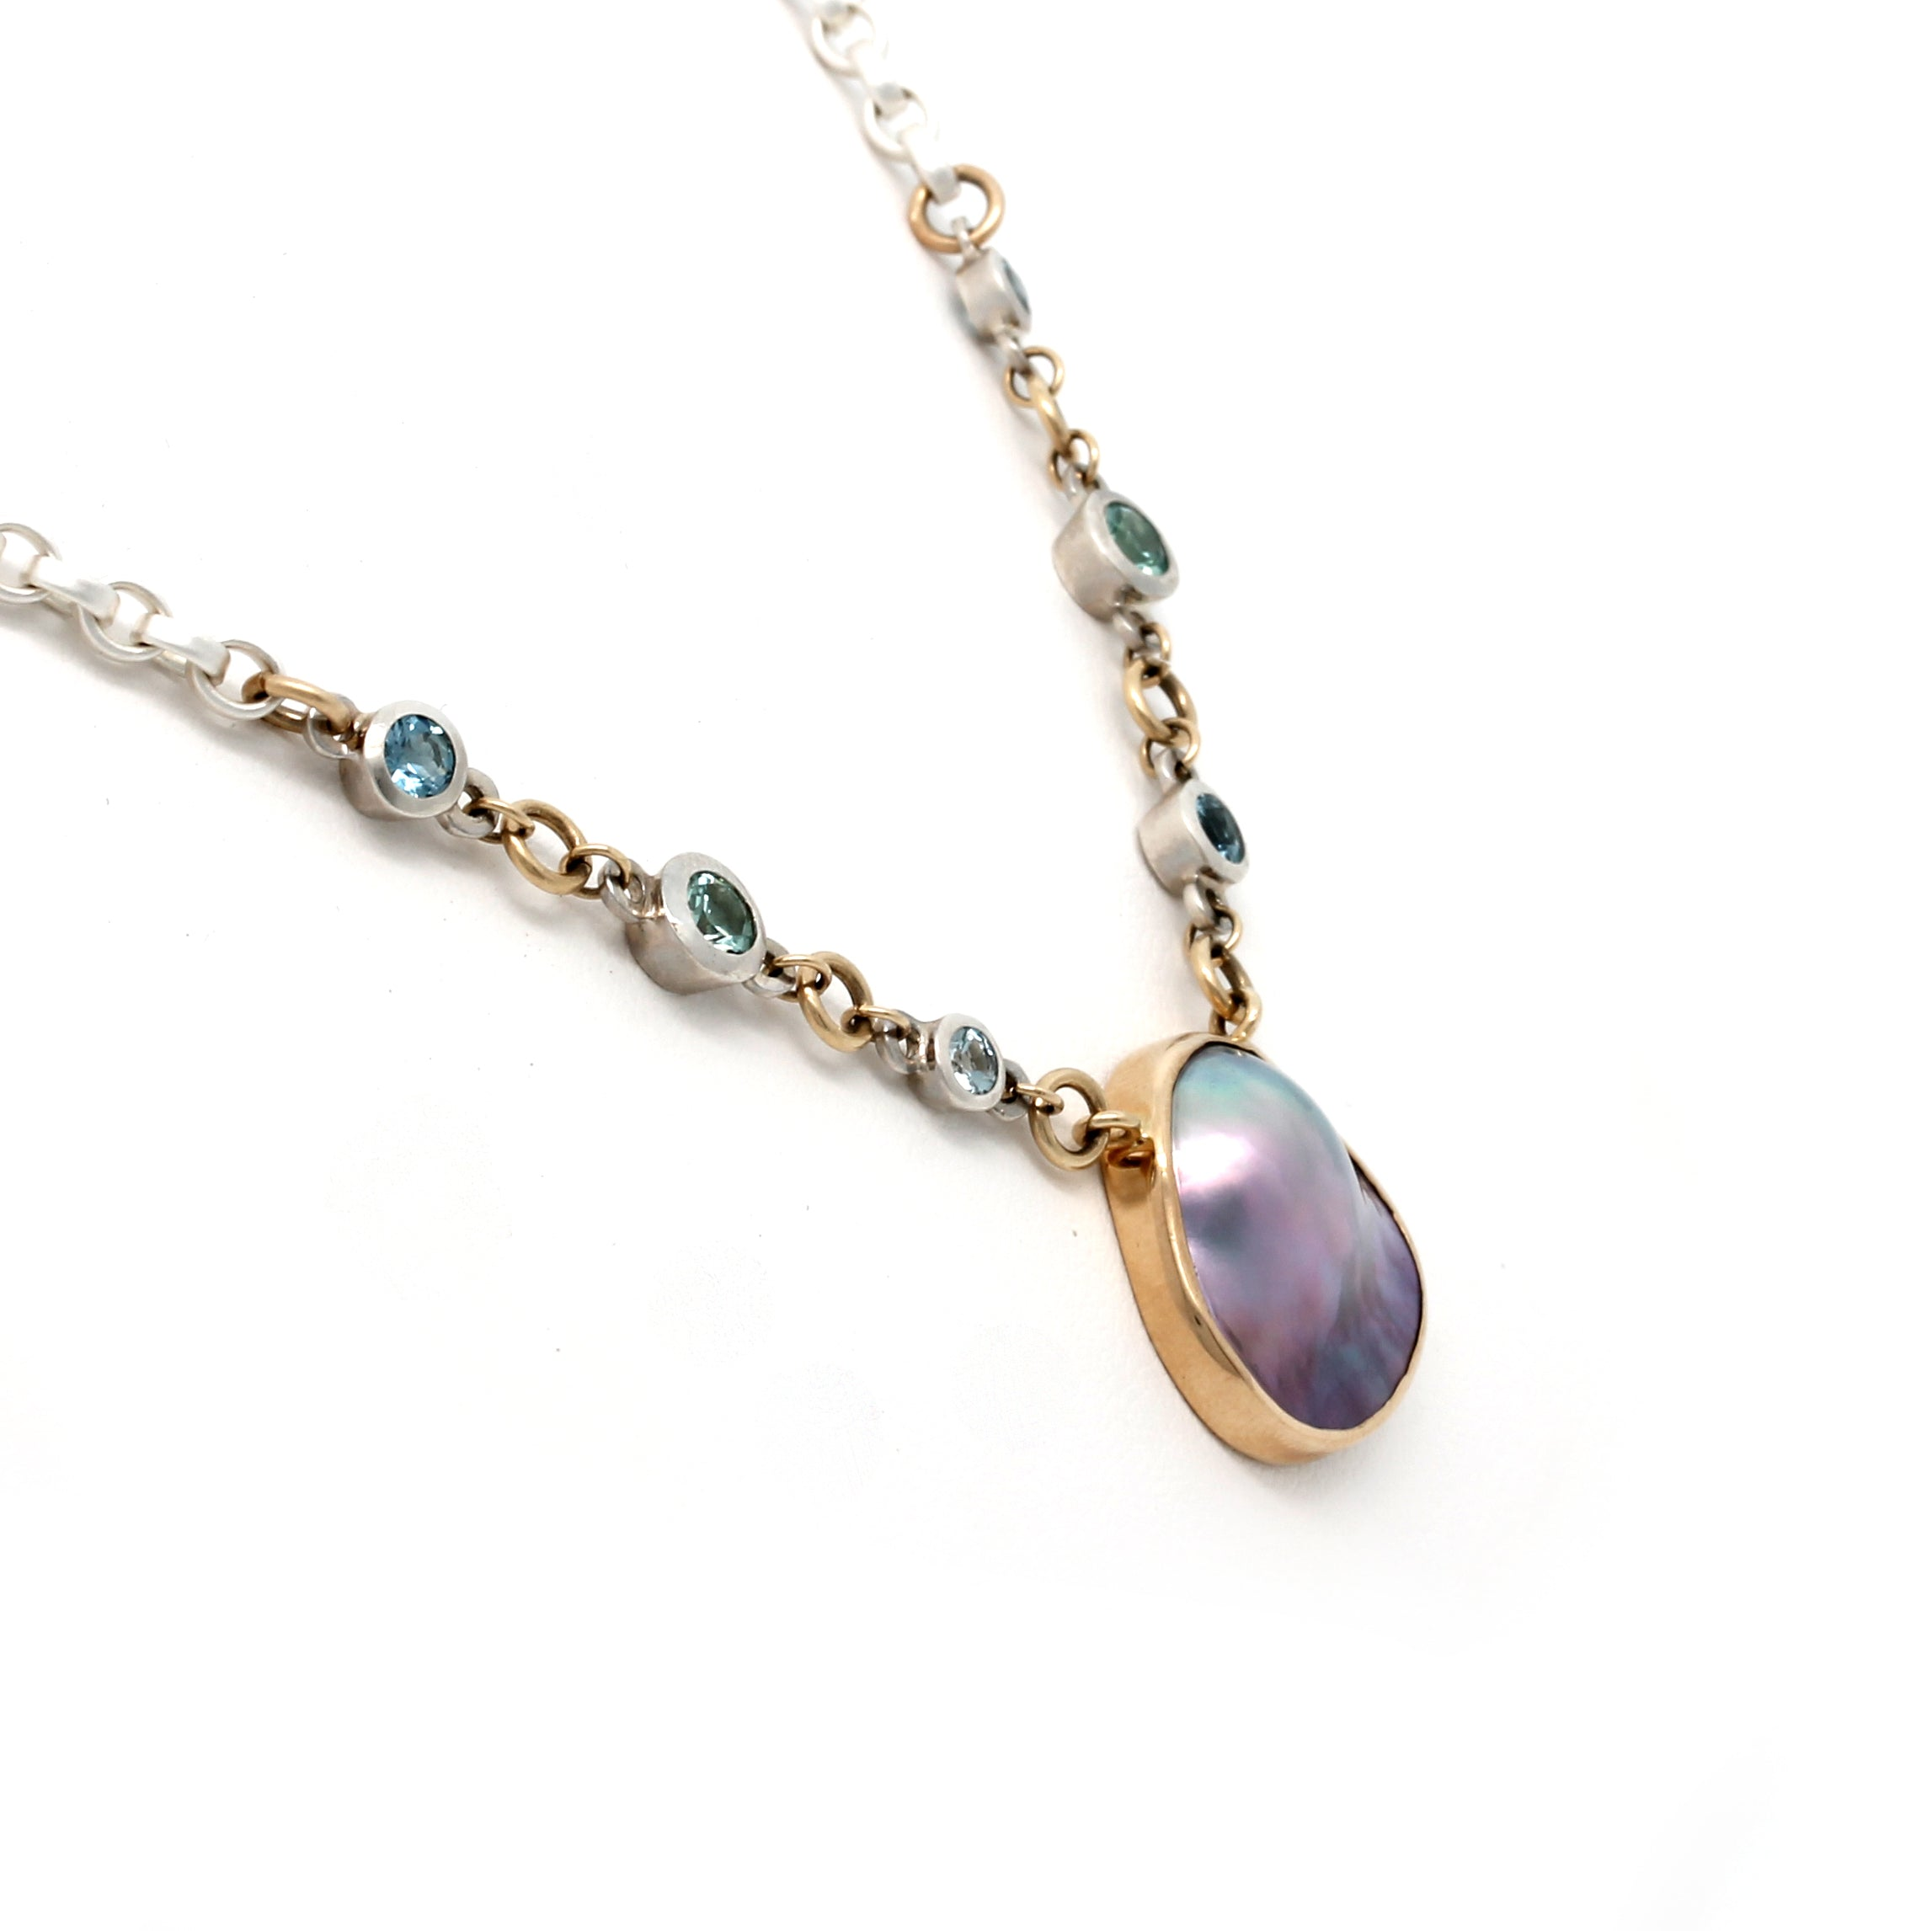 14K Yellow Gold and Silver Cortez Blister Pearl Necklace